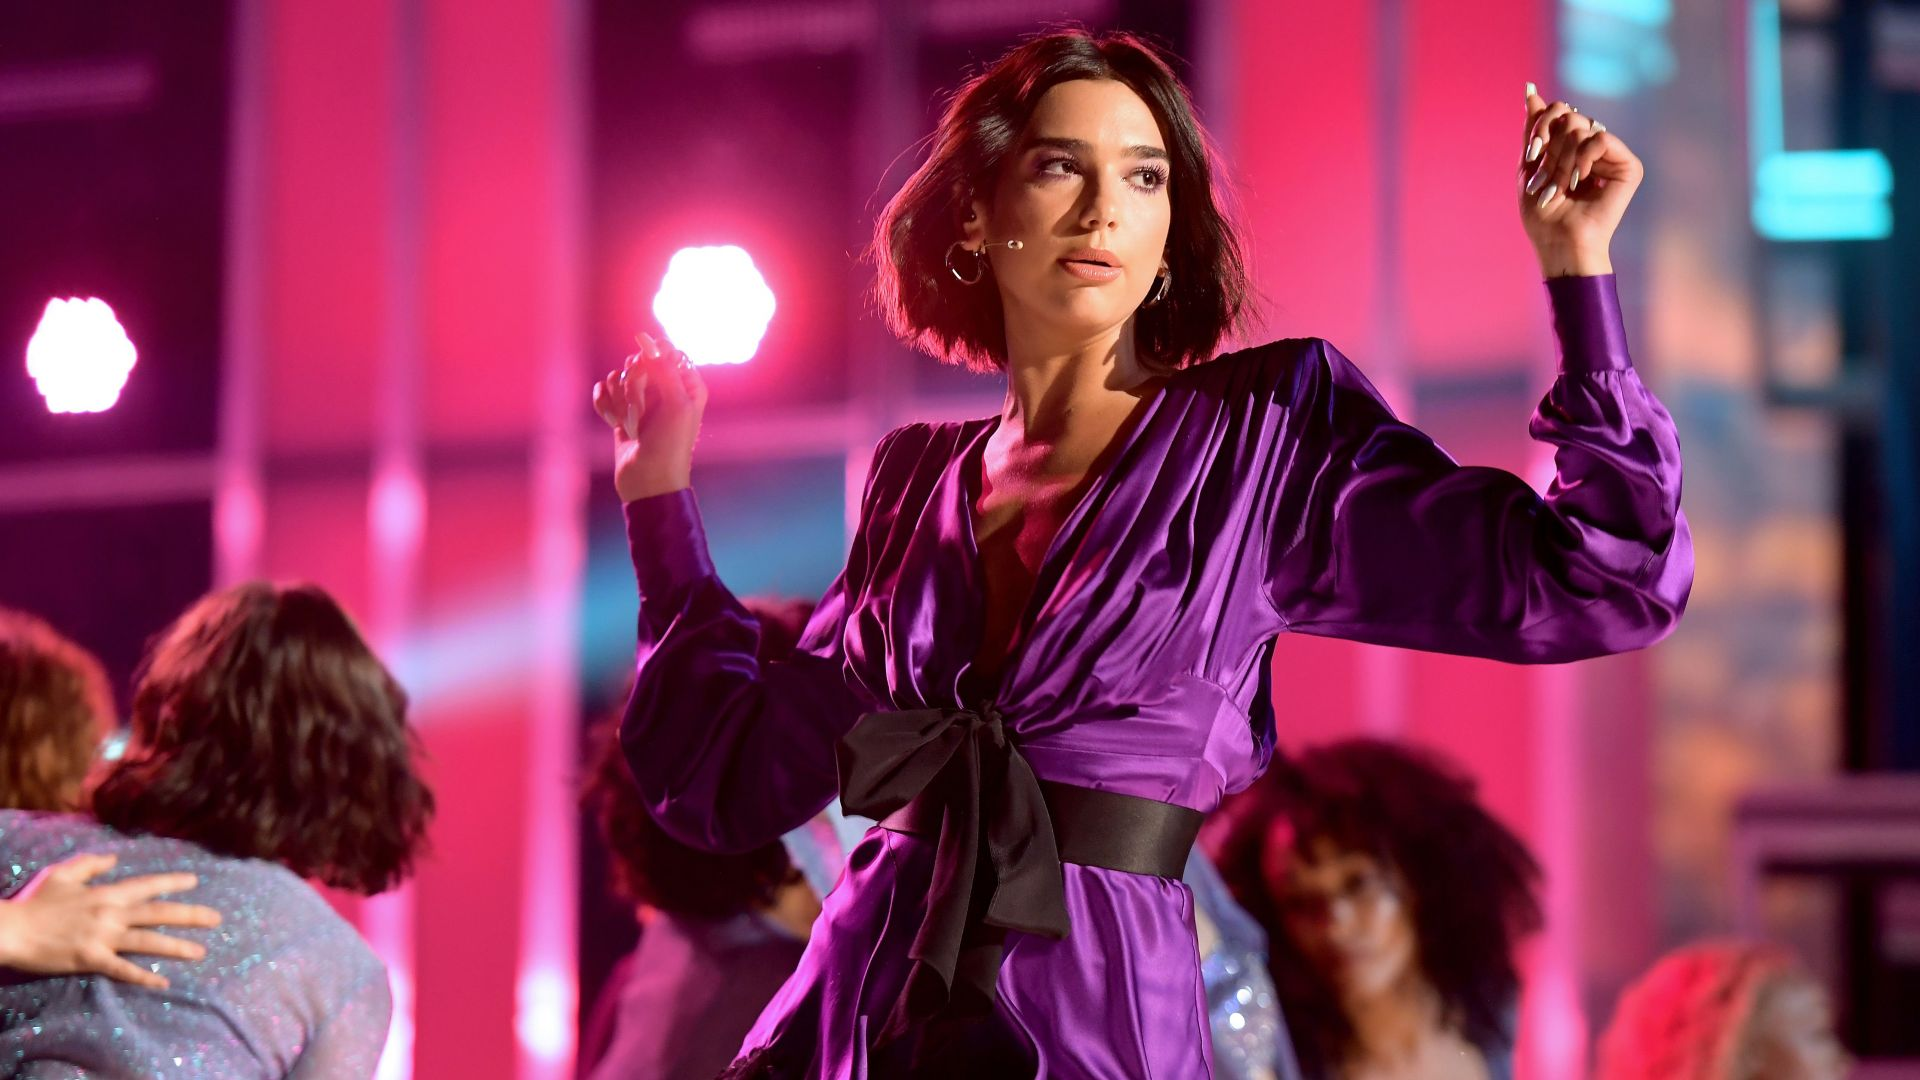 Dua Lipa, Mtv Awards 2018, 5K (horizontal)